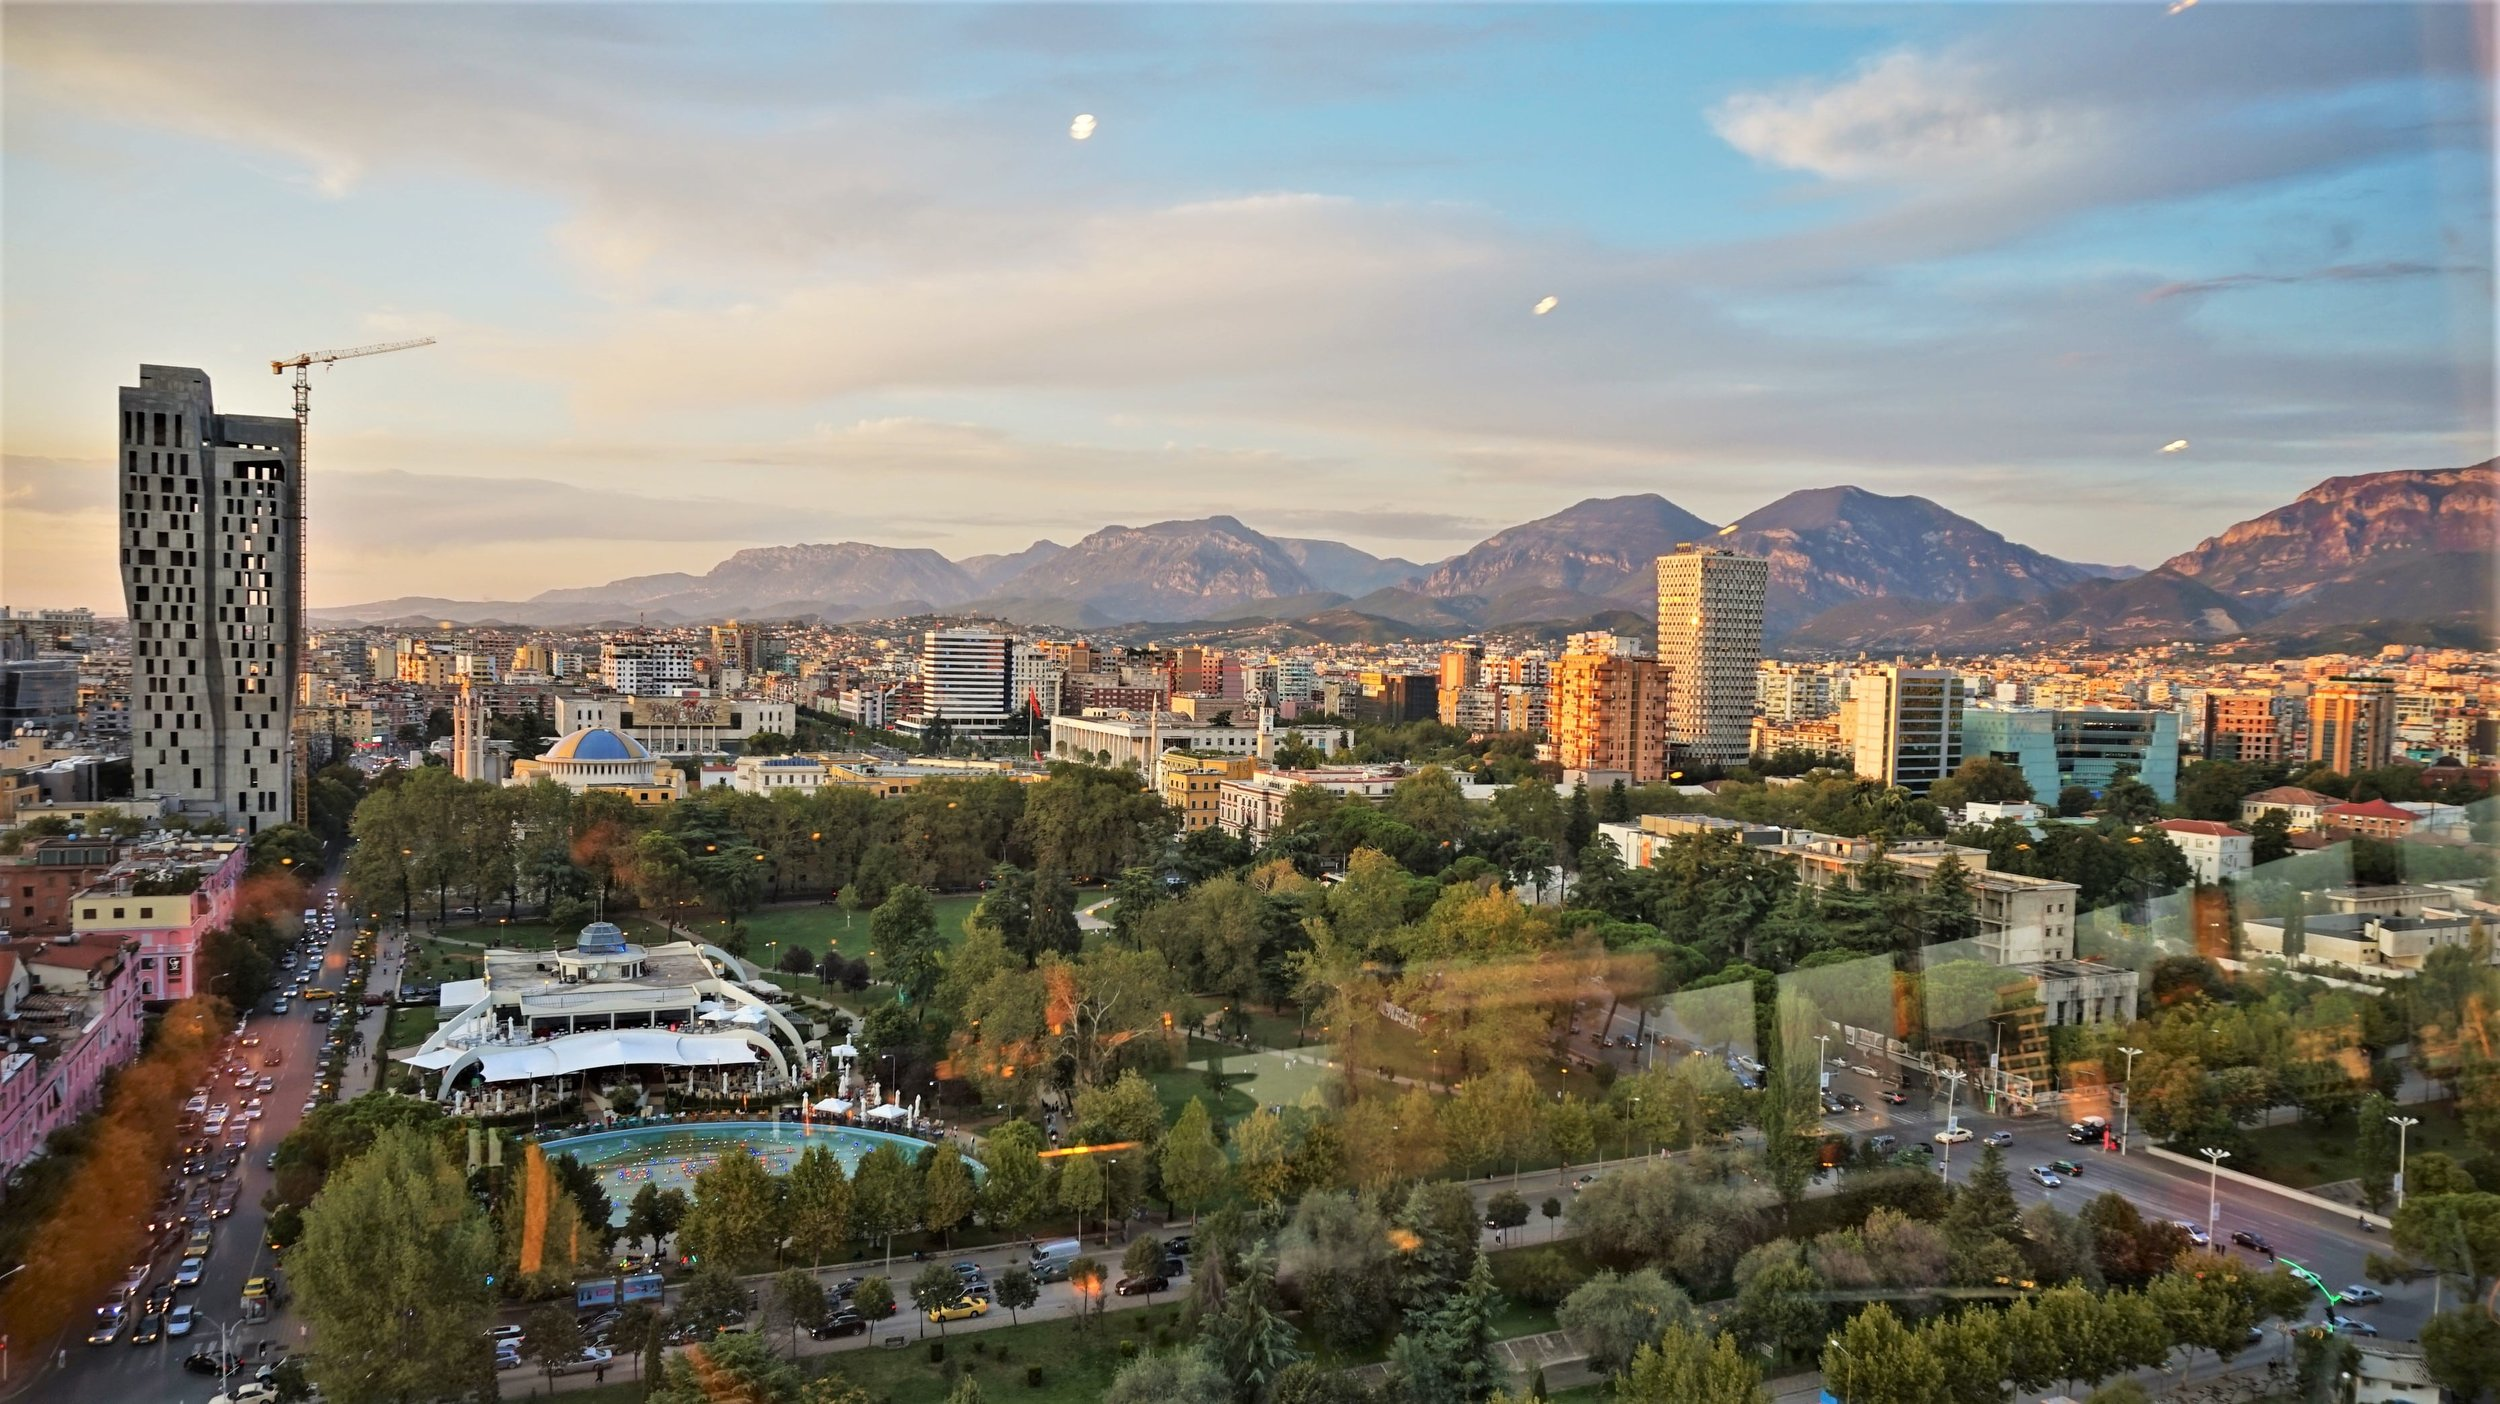 Climbing the sky tower to get some amazing city views is one of the best things to do in Tirana, Albania!